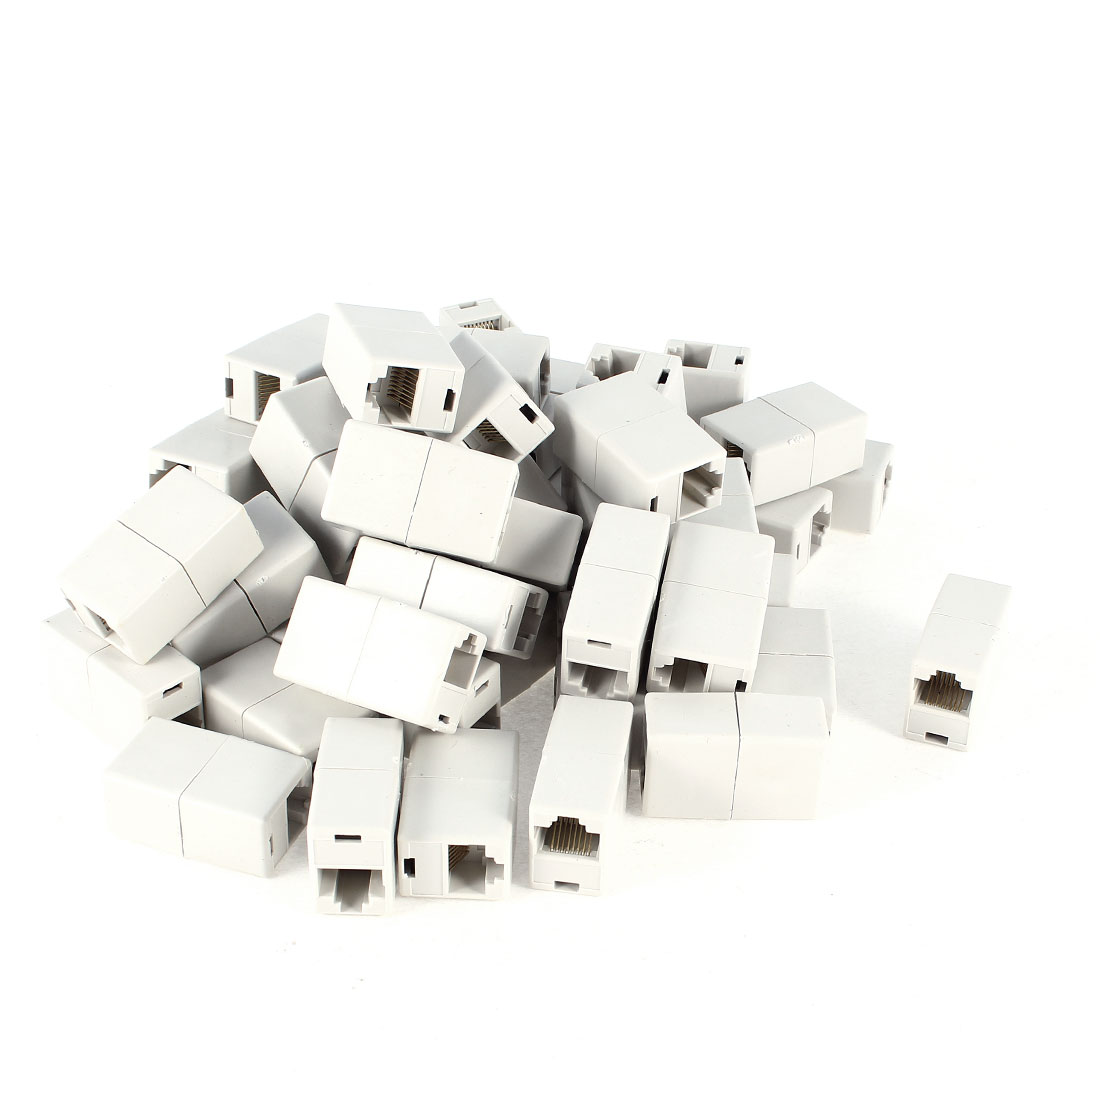 RJ45 F/F LAN Network Inline Splitter Extender Coupler Adapter Grey White 50 Pcs